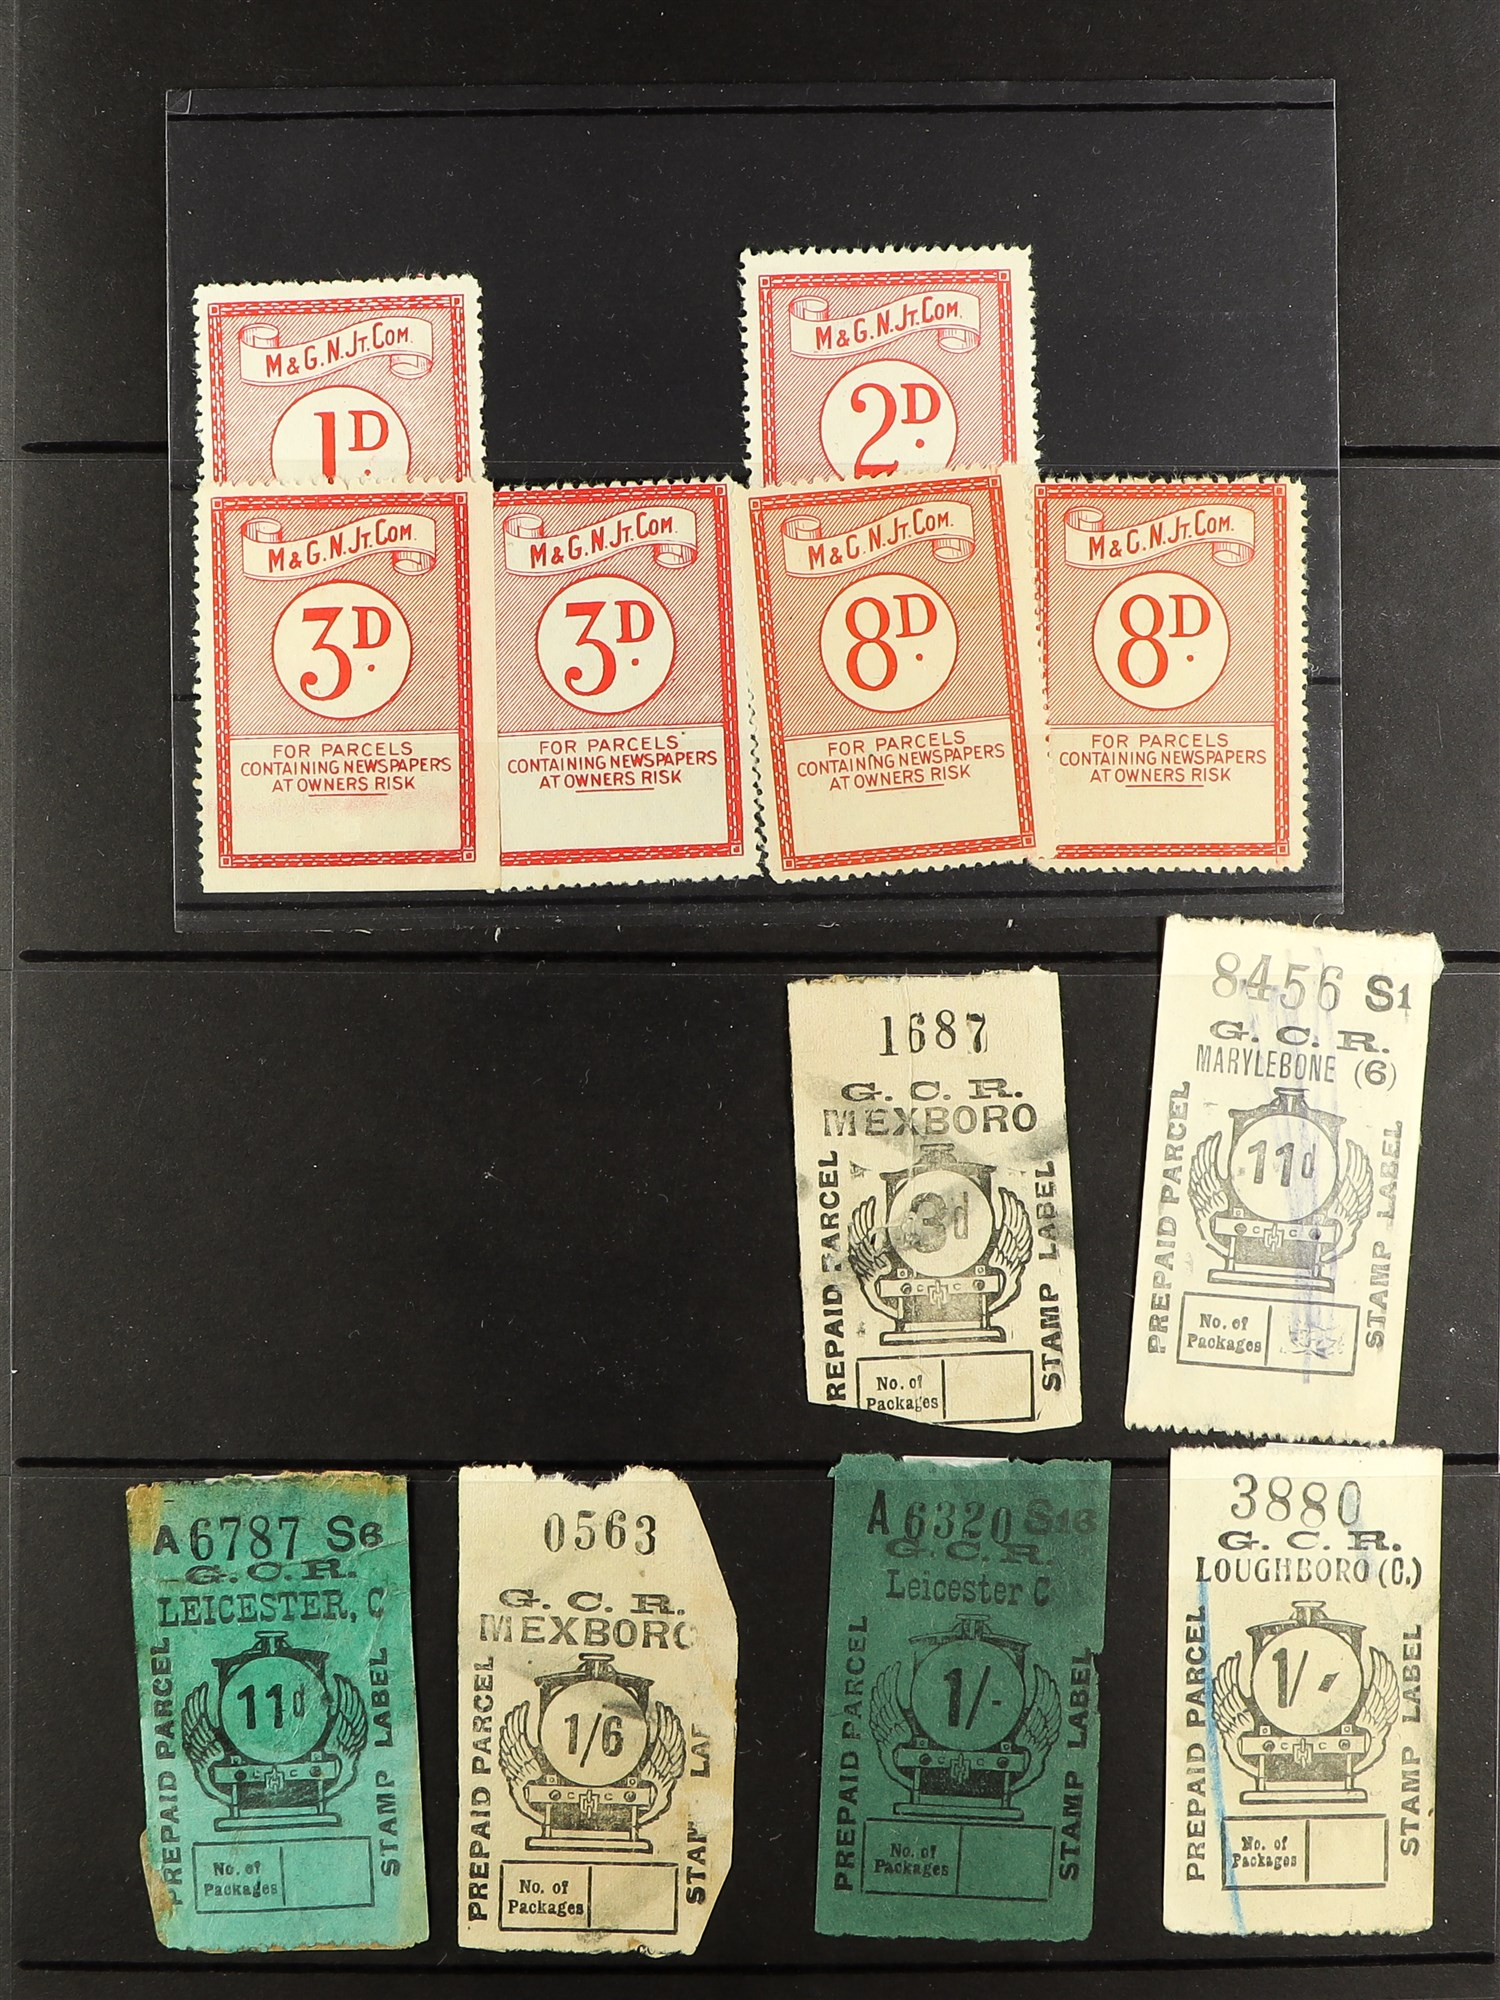 GREAT BRITAIN RAILWAY LETTER AND NEWSPAPER STAMPS 1890's-1940's COLLECTION in two albums, mint and - Image 15 of 24